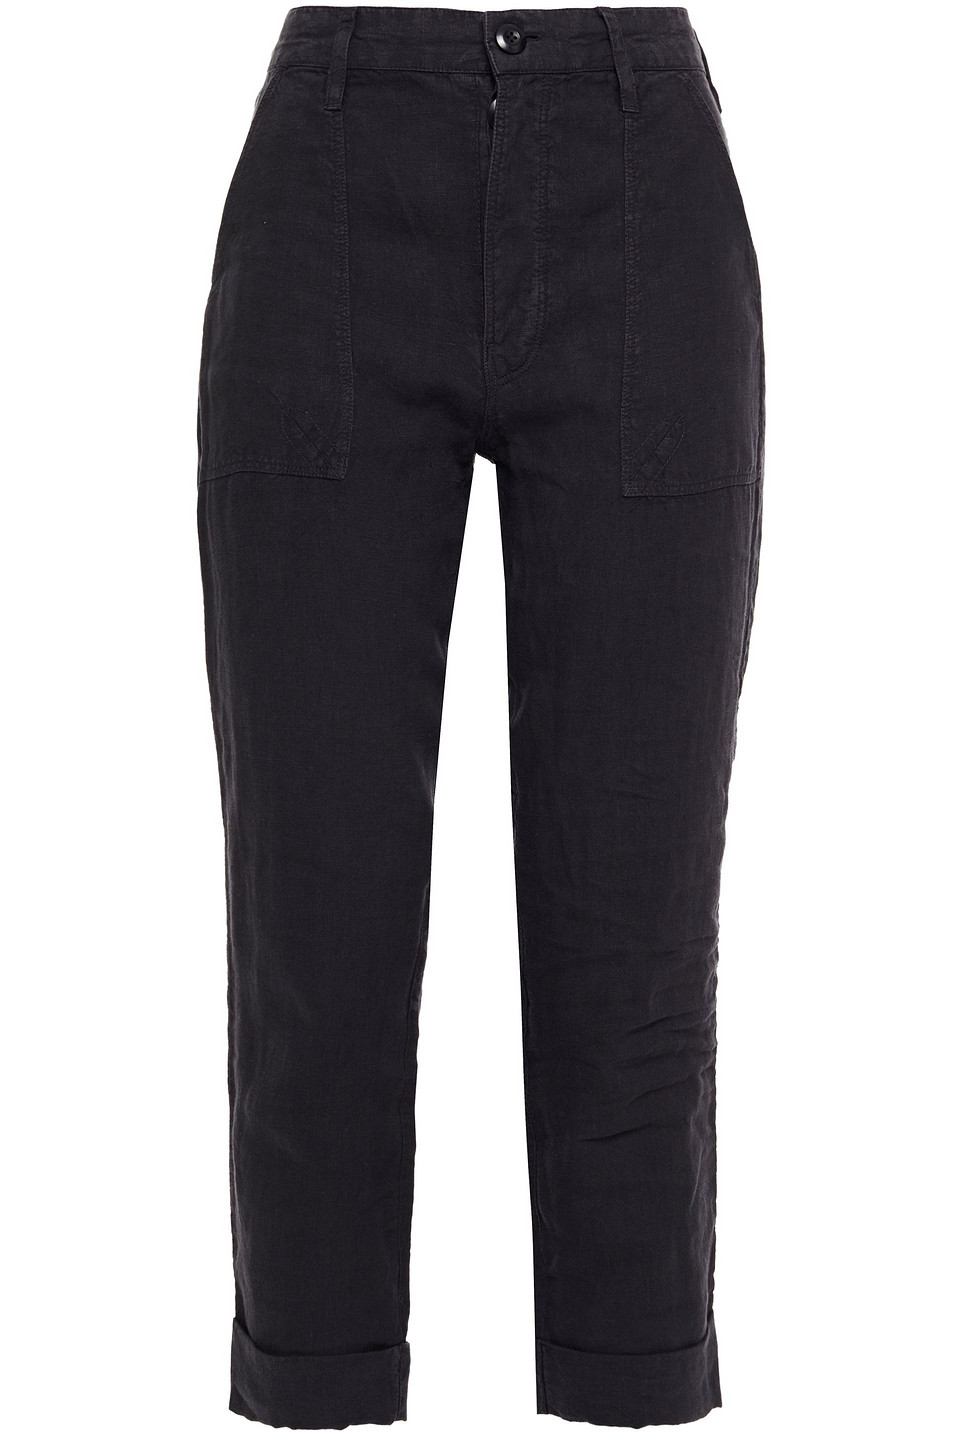 Frame   Frame Woman Le Beau Cropped Linen Tapered Pants Charcoal   Clouty